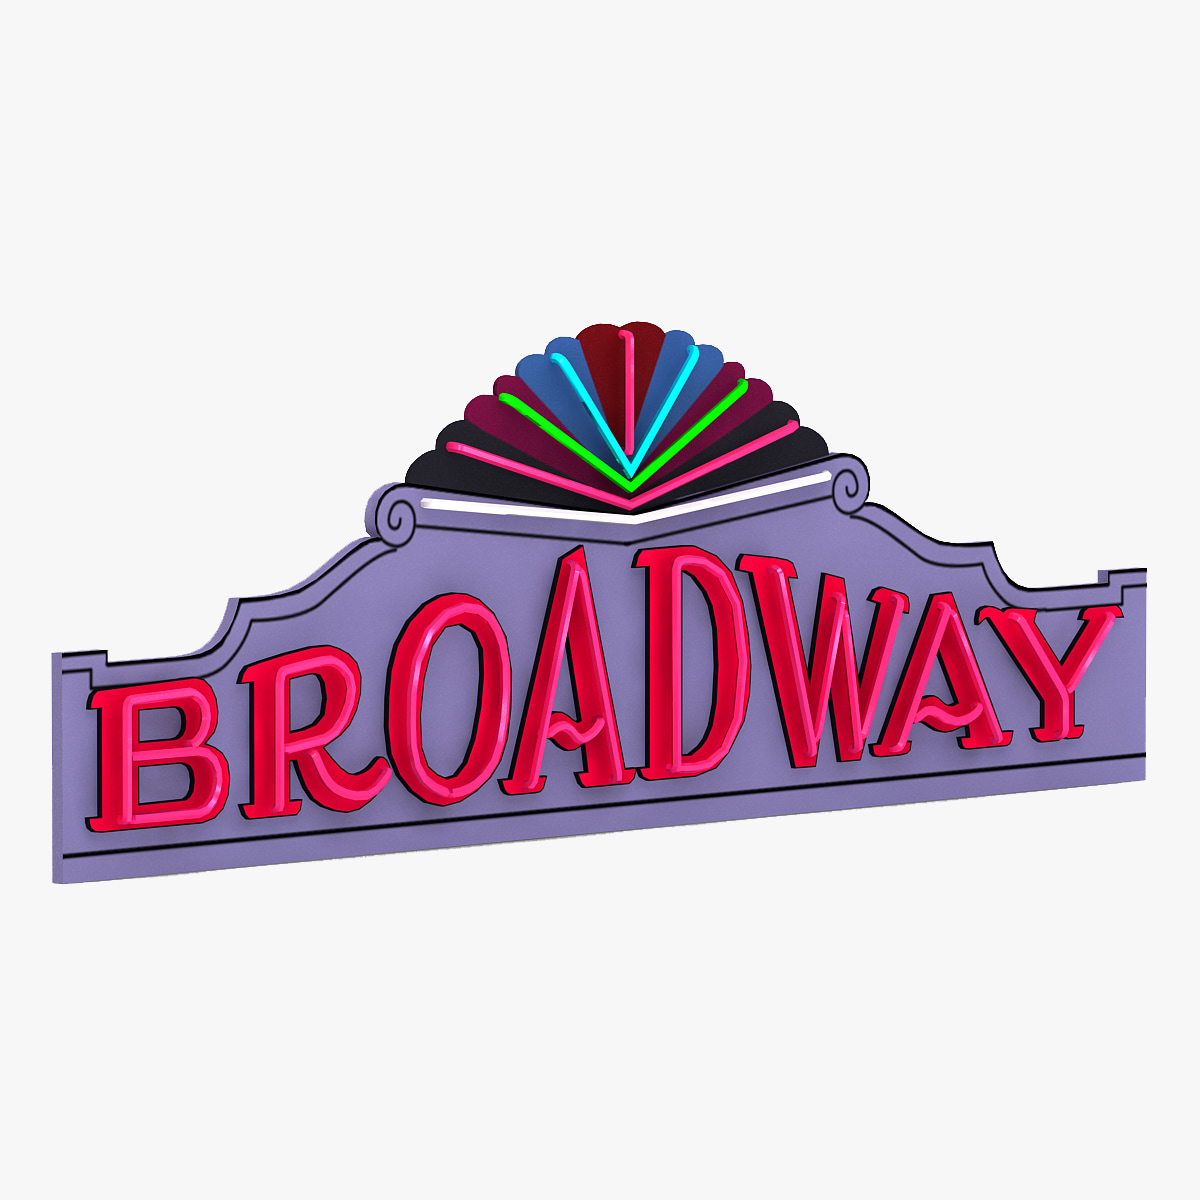 Broadway_Theater_Sign_000.jpg